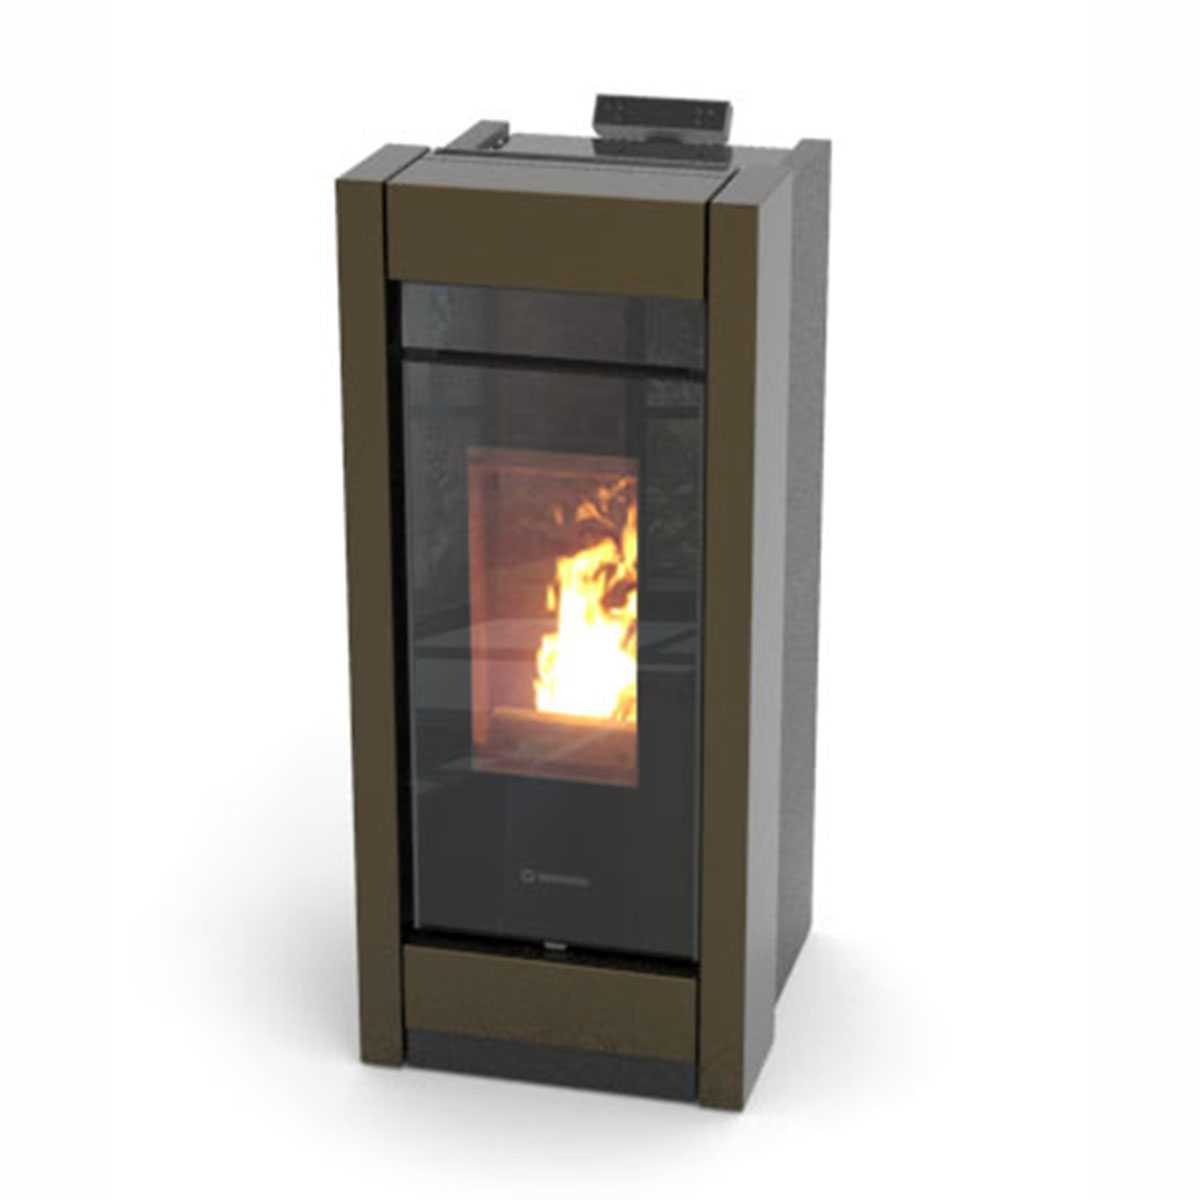 Termostufa a pellet nero-bronze Thermorossi Essenza Idra Metalcolor 13,50 kW